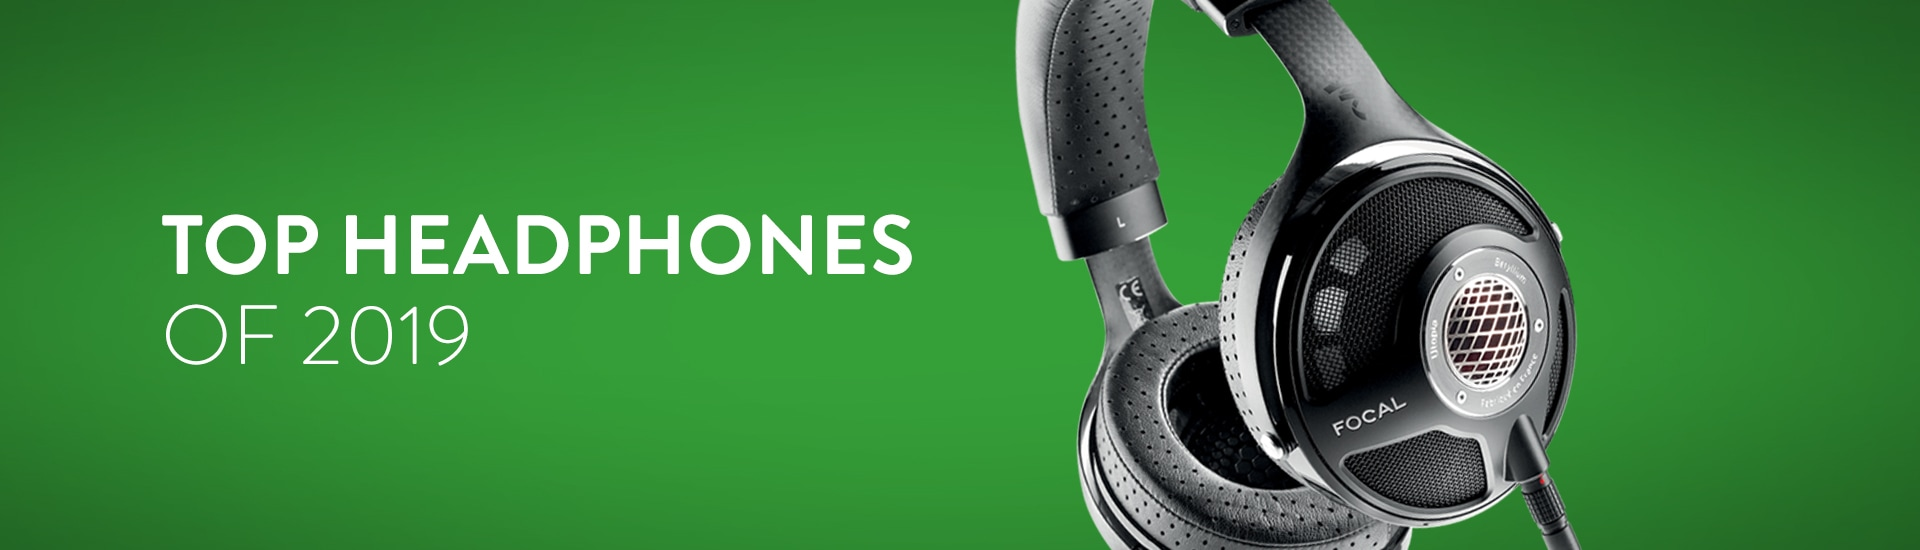 f4e1e440f80 Best Headphones of 2019 | World Wide Stereo